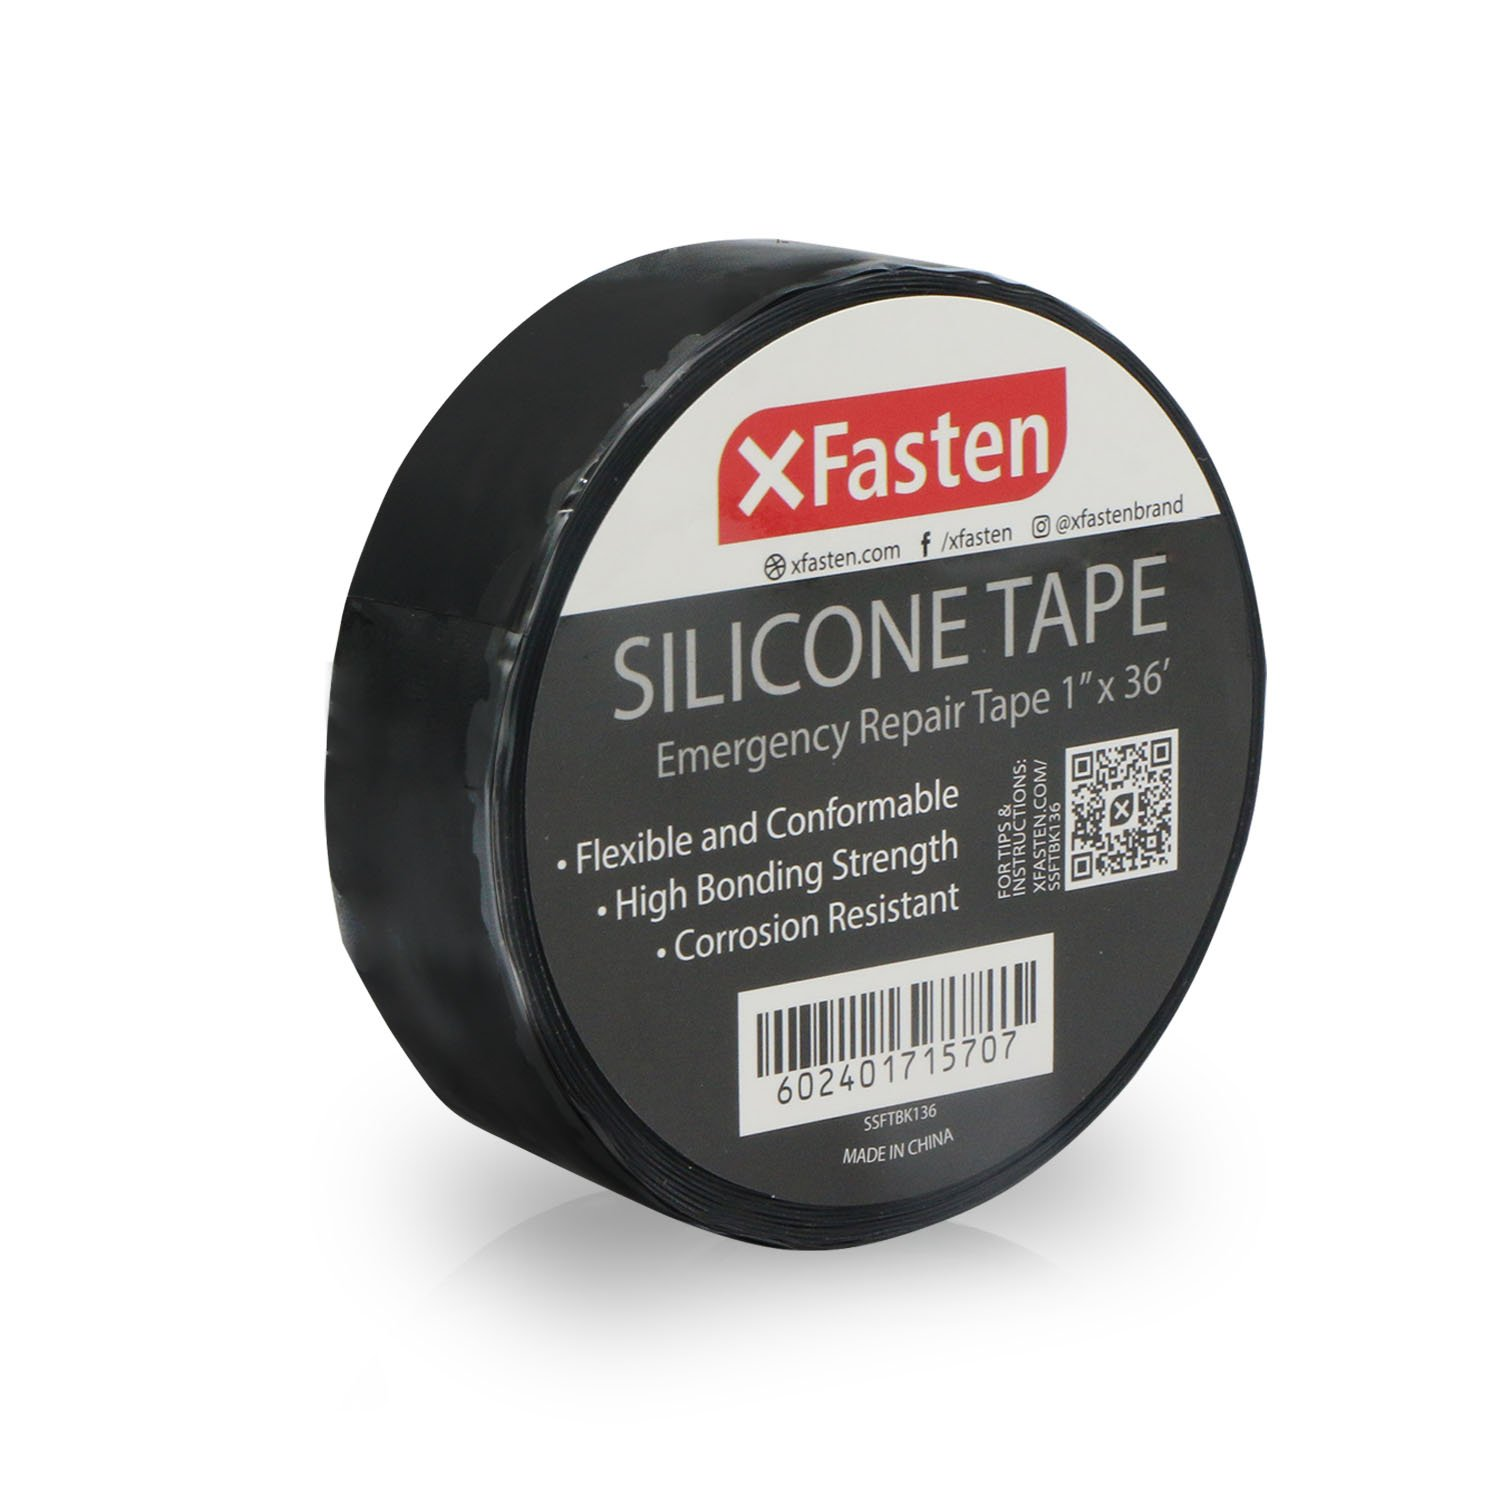 XFasten Silicone Self Fusing Tape 1-Inch x 36-Foot (Black) Silicone Repair Tape